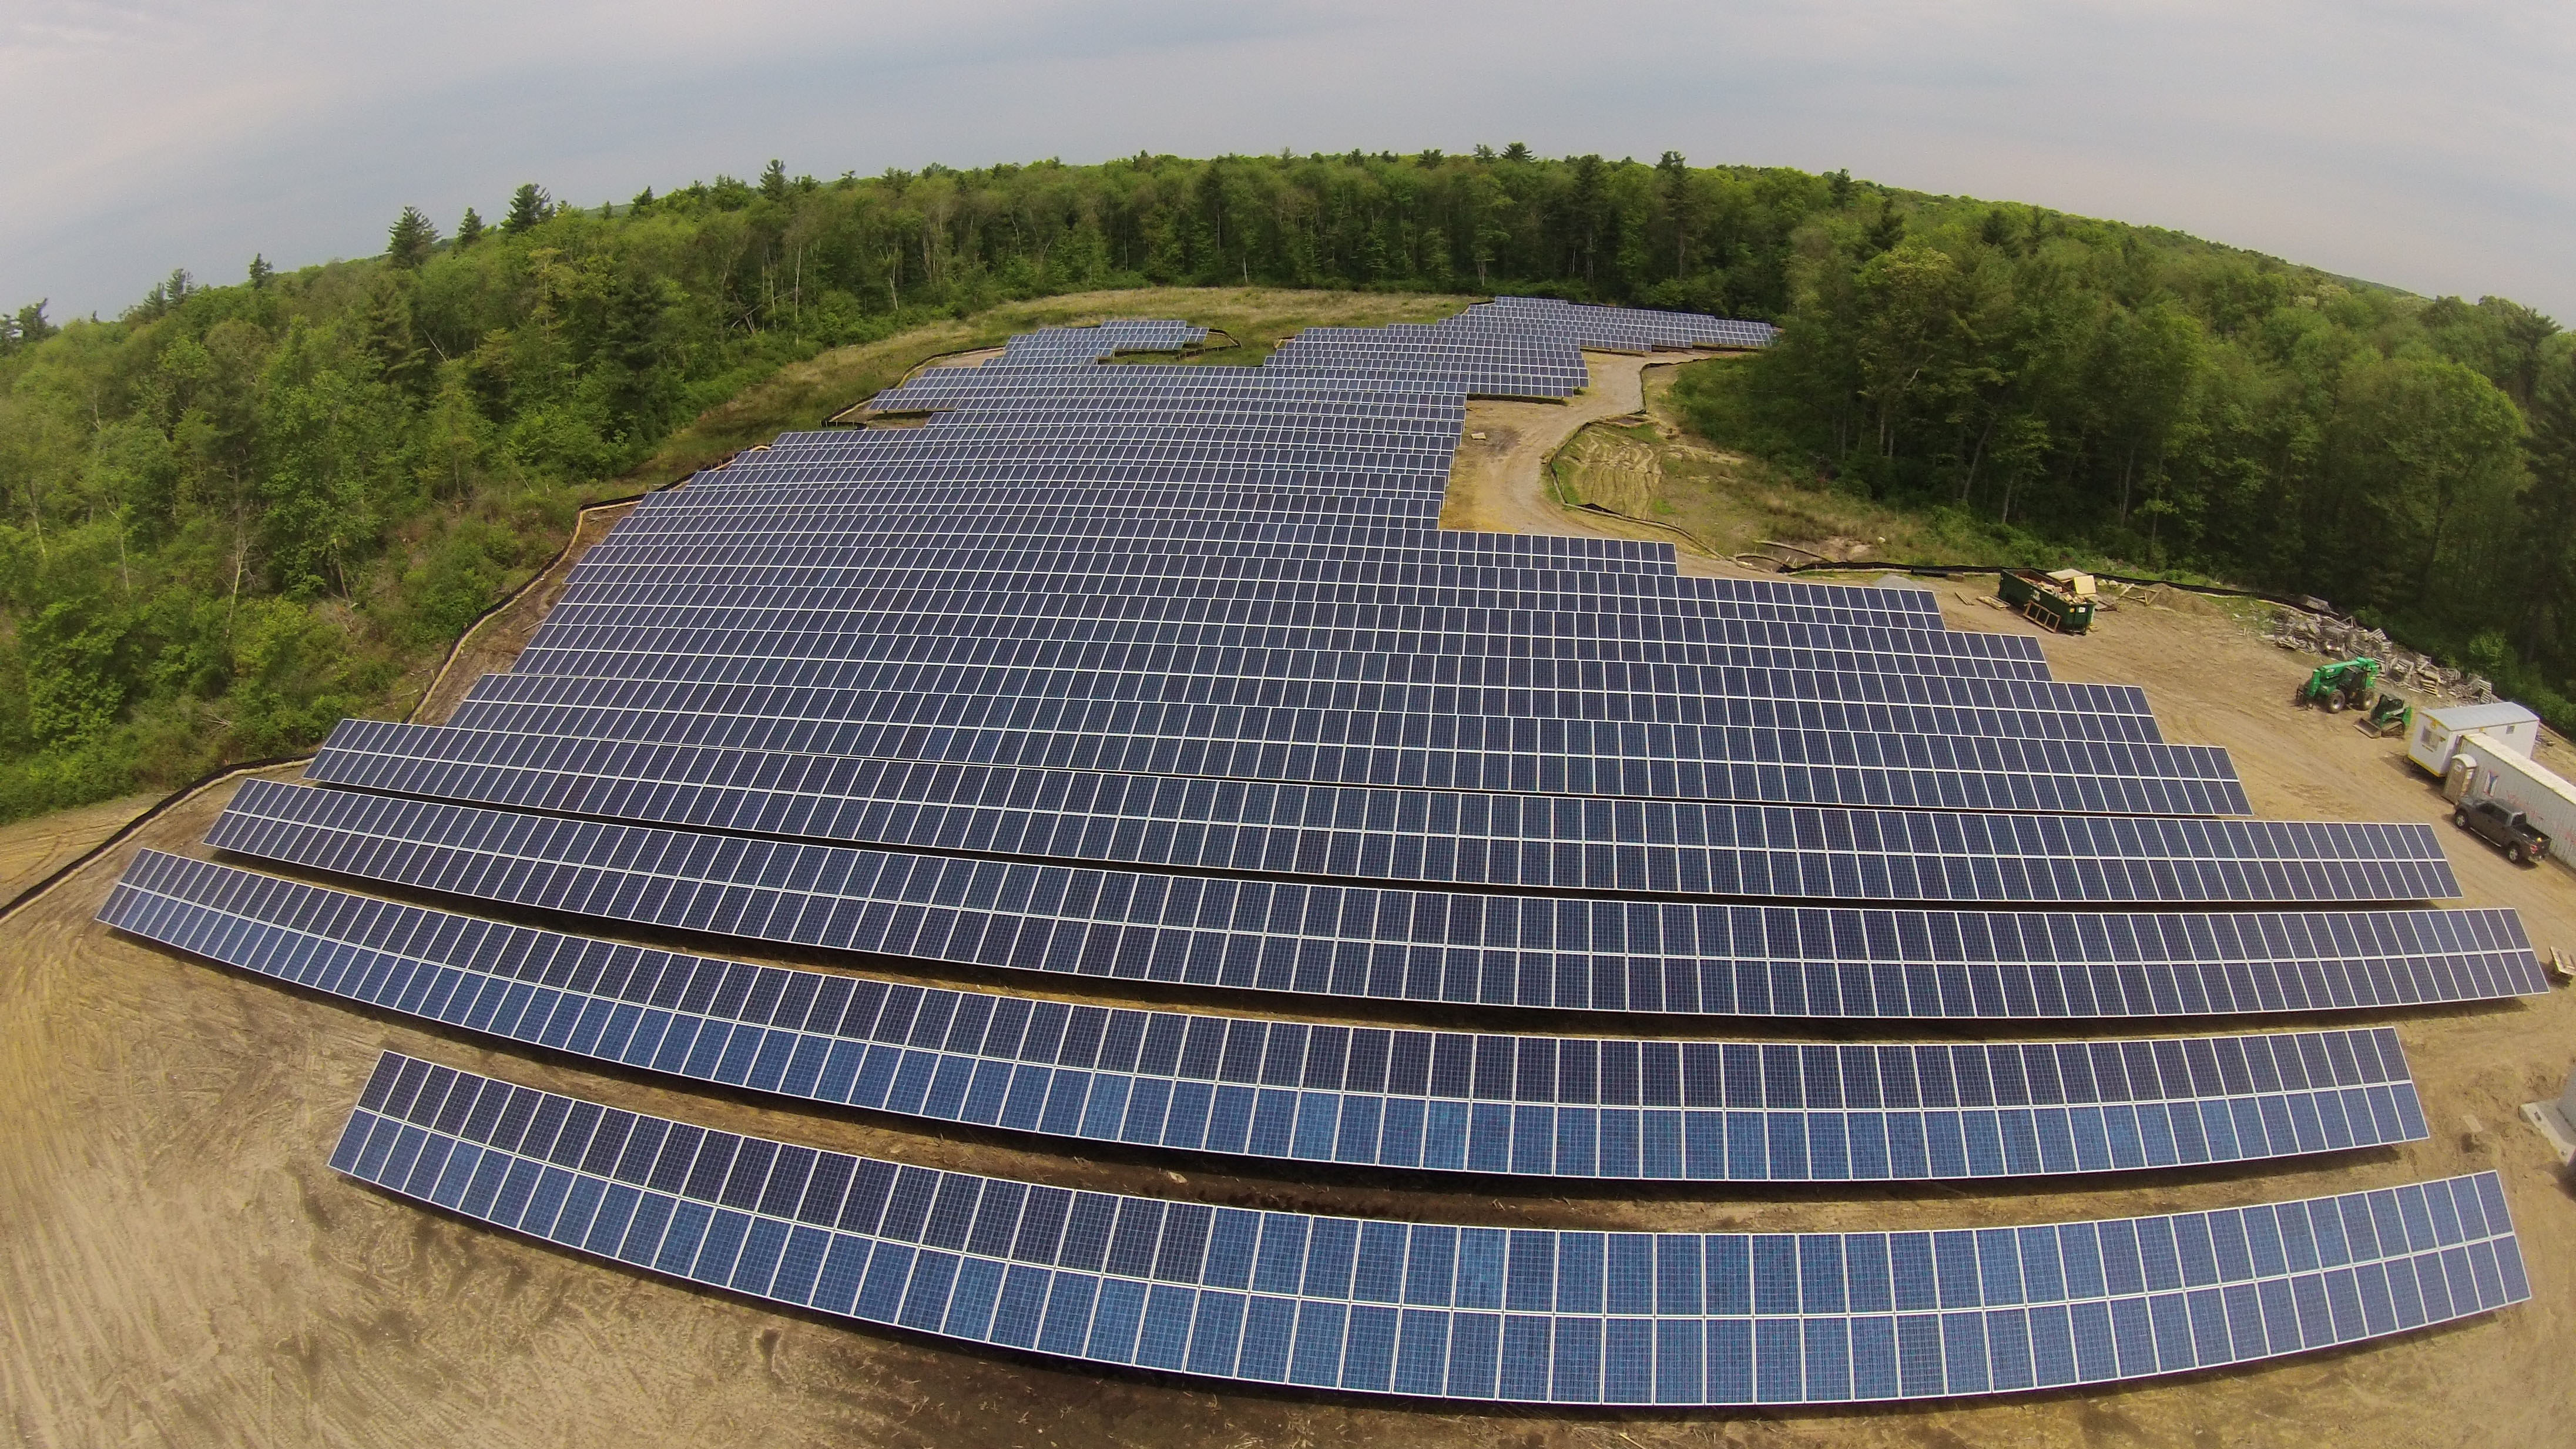 To tackle Connecticut's deficit, scale up solar